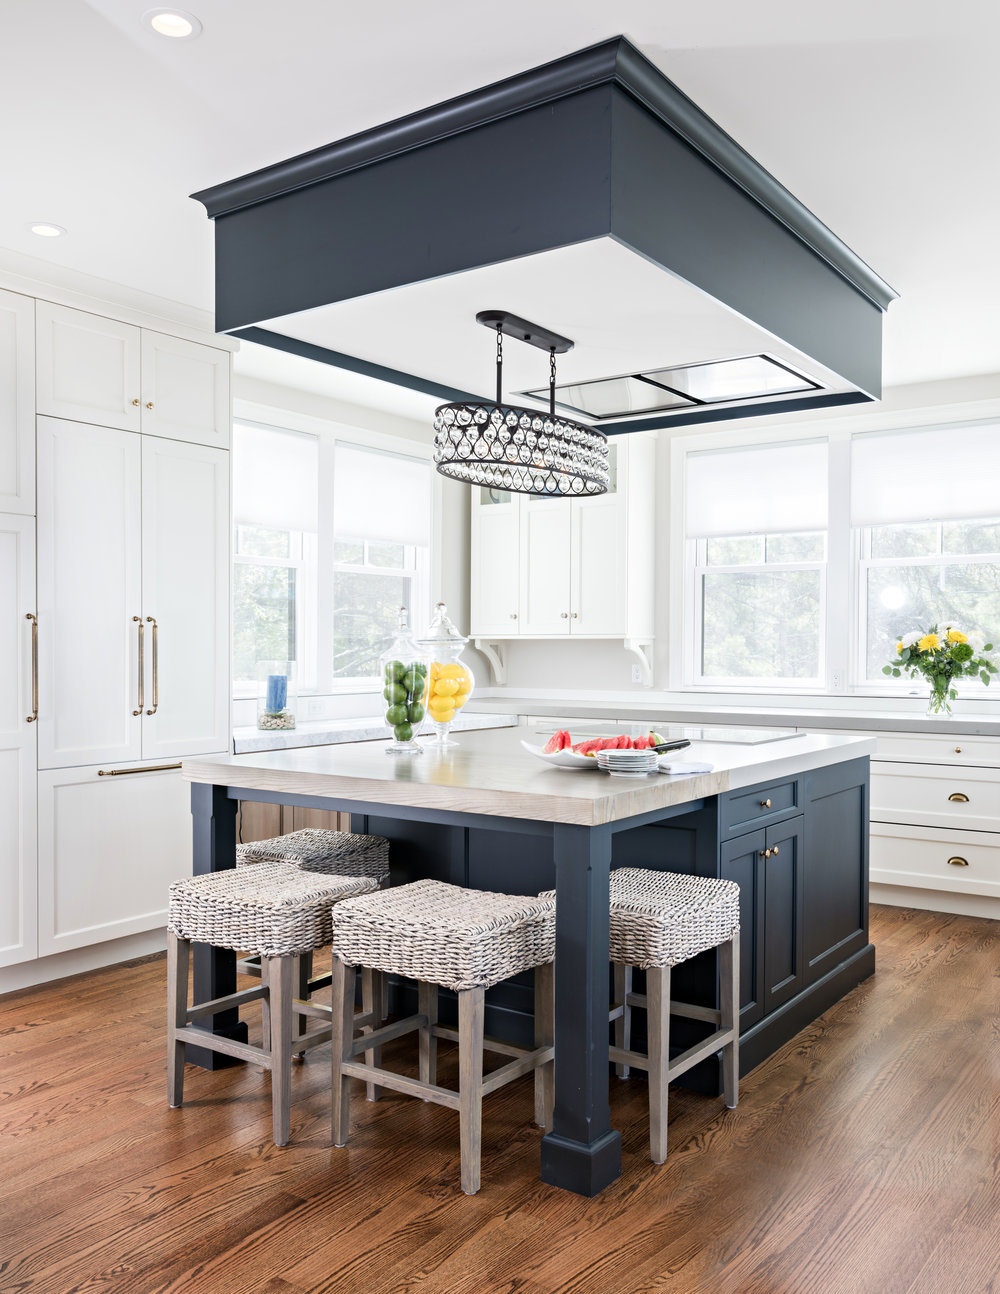 Coastal doesn't have to be void of sparkle! High above the navy island hangs the jewelry, visually connecting the soffit and the surface below. Mixed metal finishes invite a casual elegance and real life spaces.